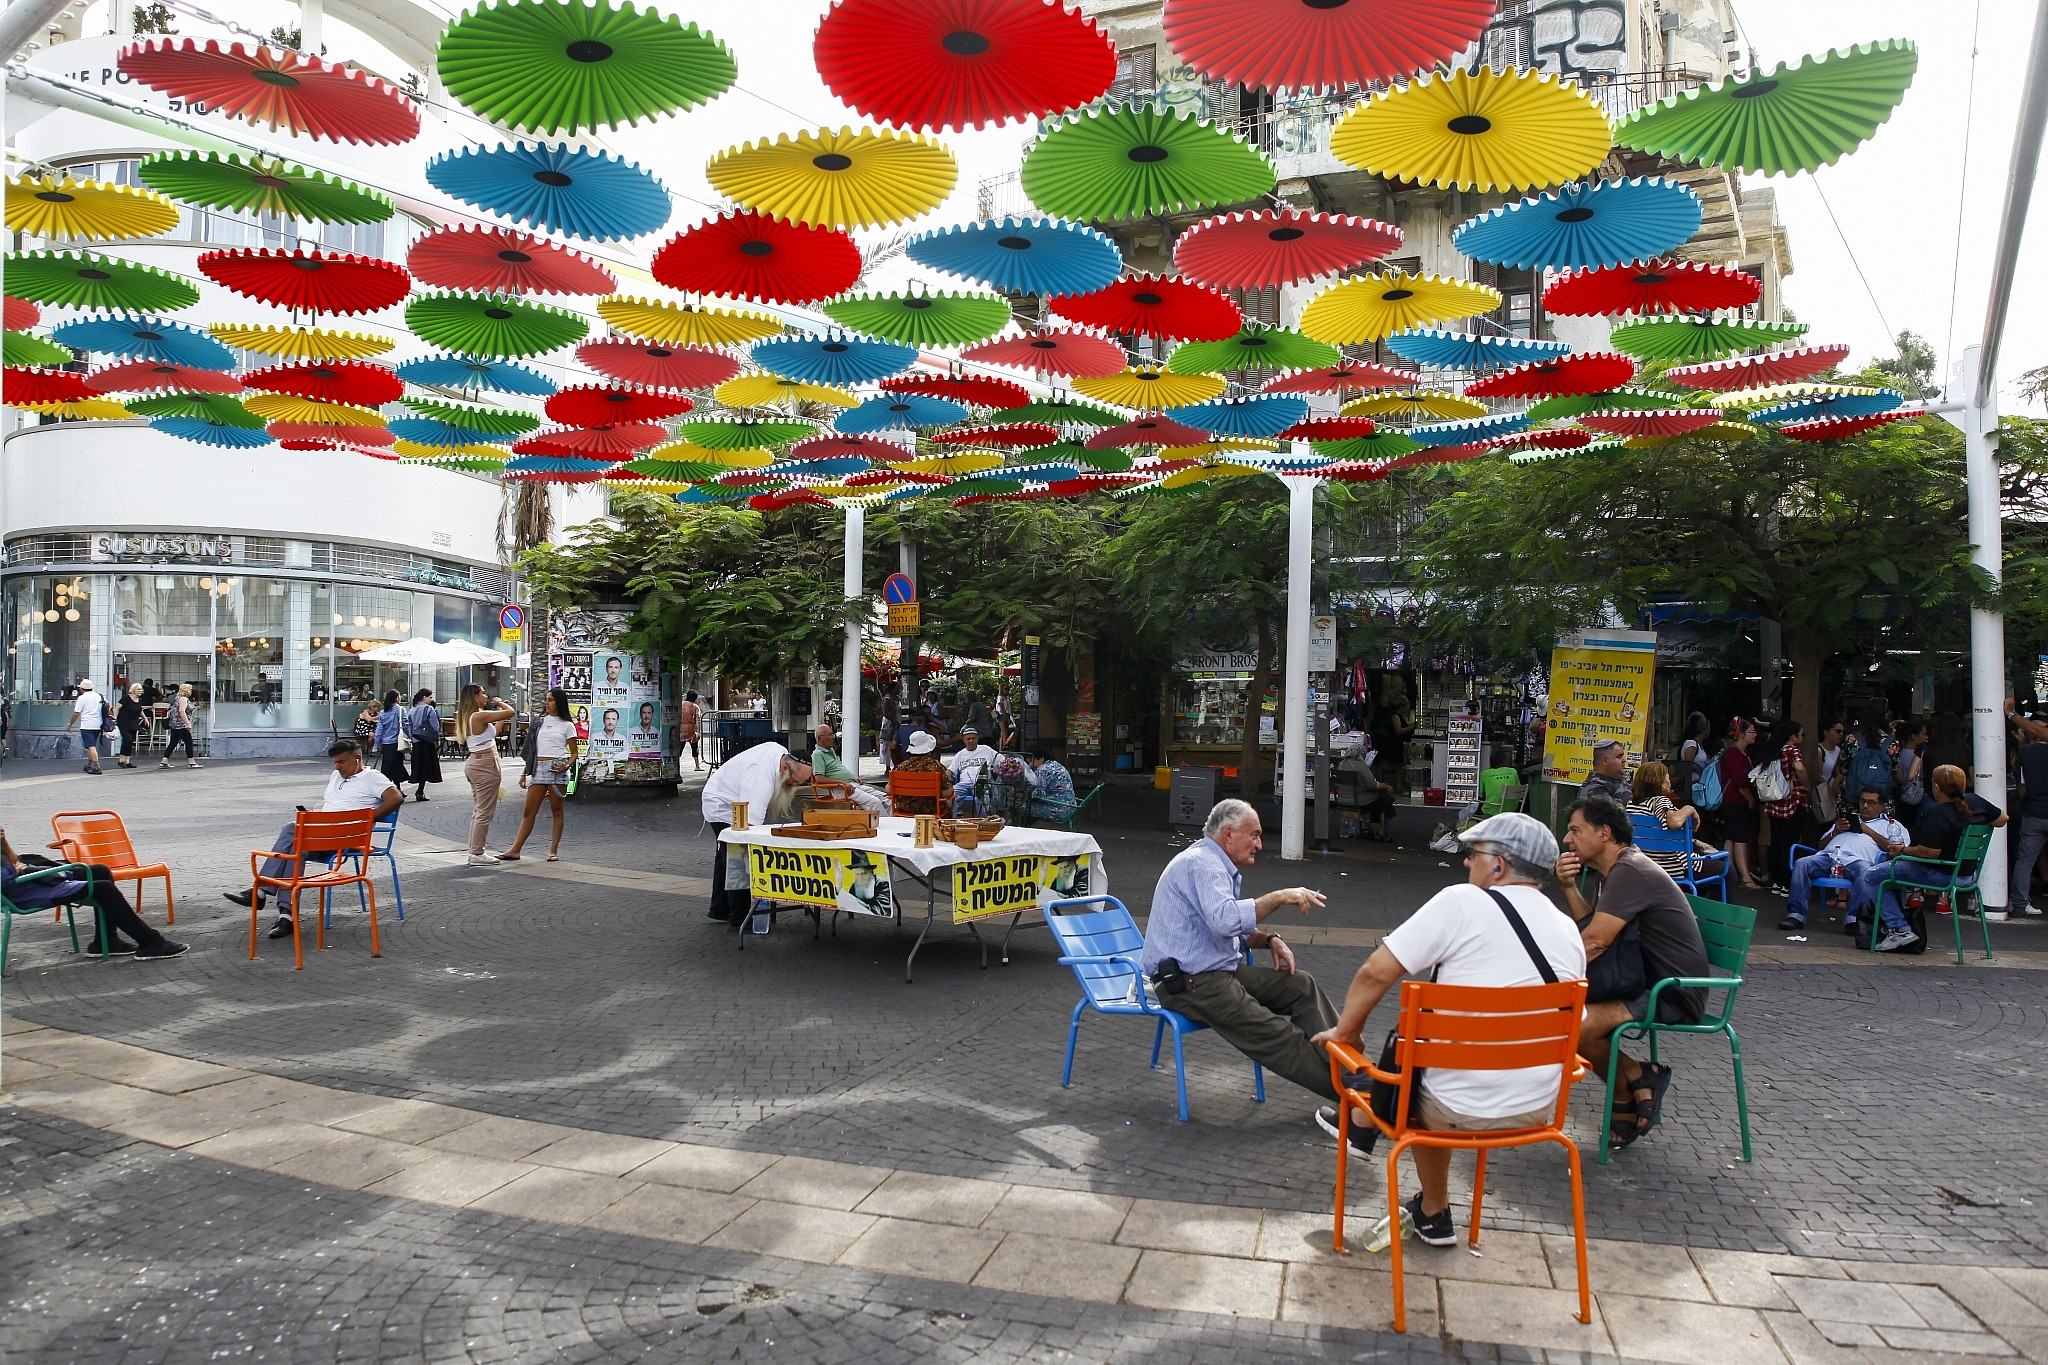 Tel Aviv number 21 in world 'best cities' ranking, first in